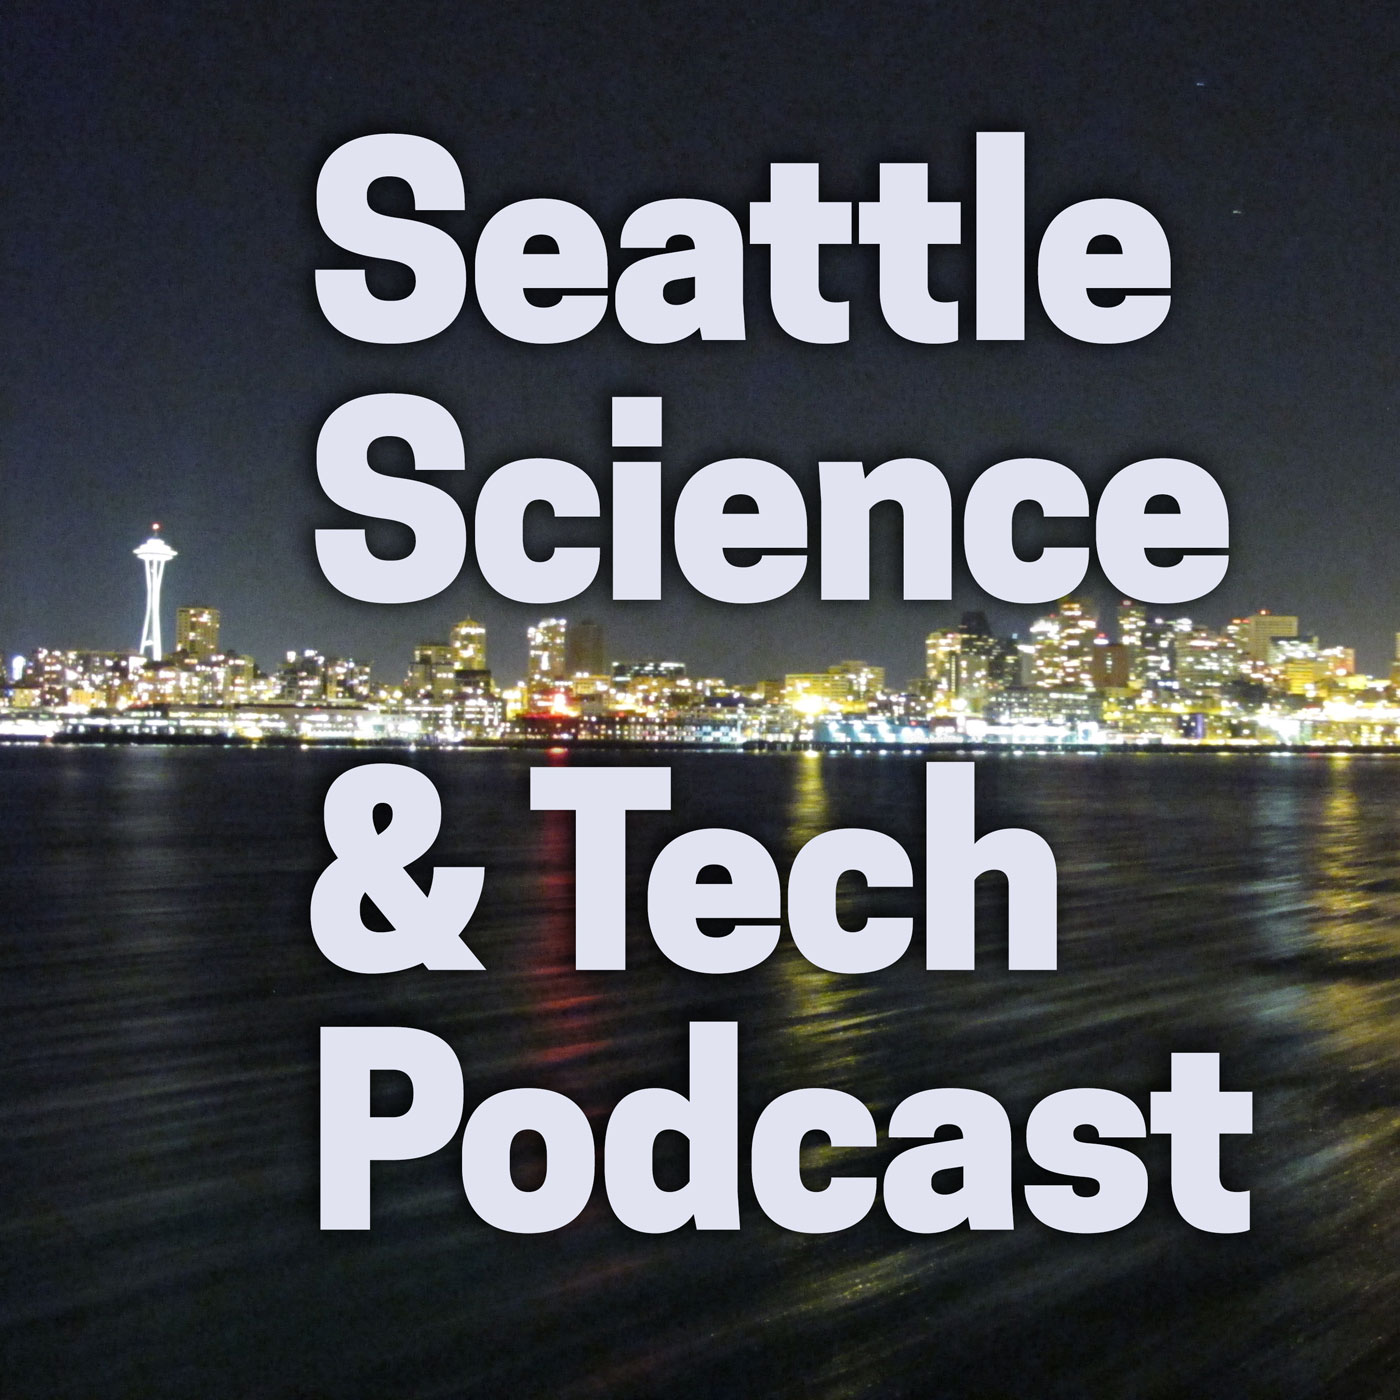 Seattle-SciTech-podcast-logo-1400.jpg